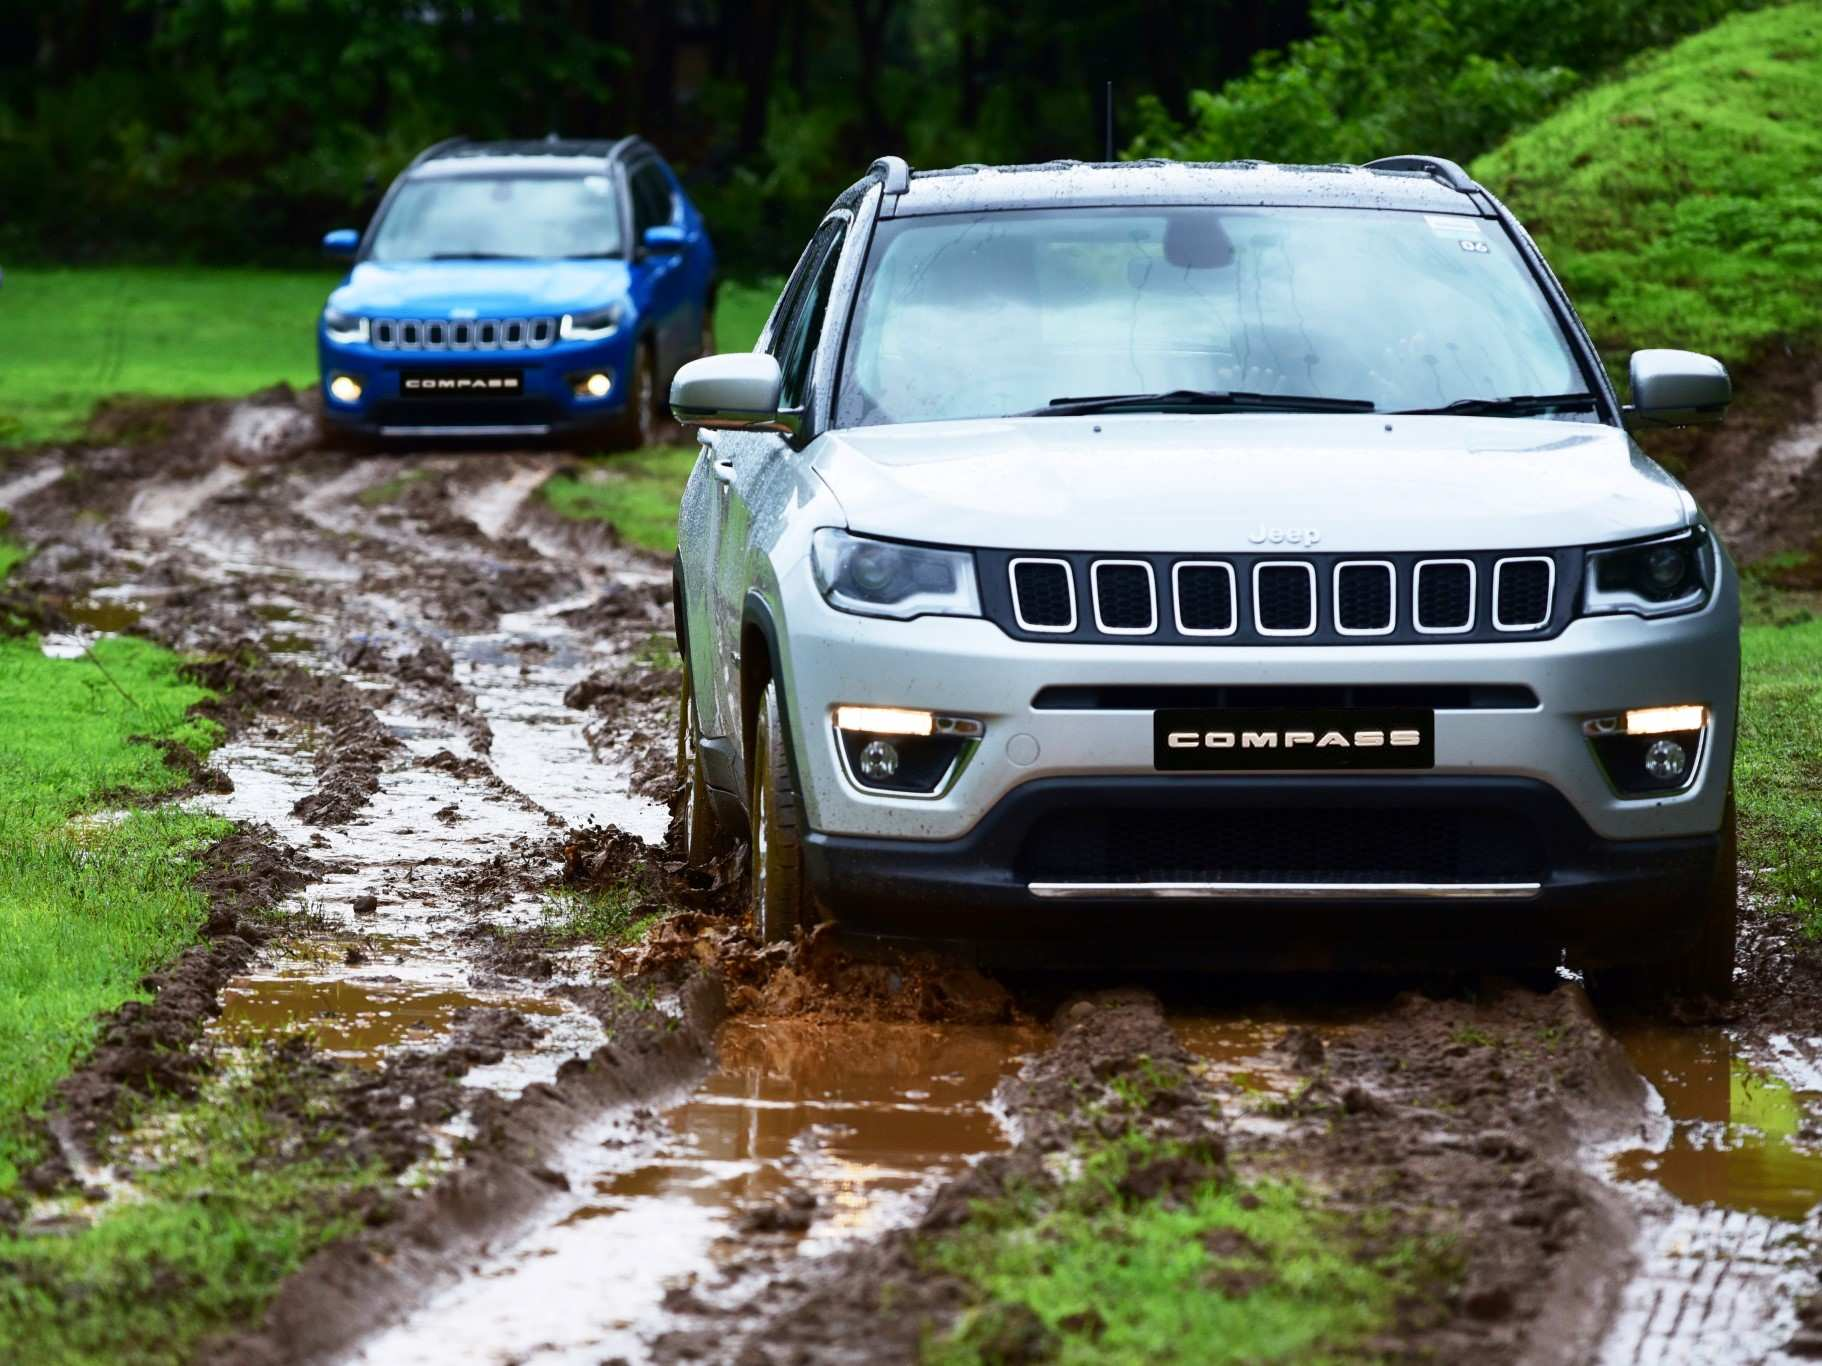 92 Concept of Jeep Compass 2020 India New Review with Jeep Compass 2020 India